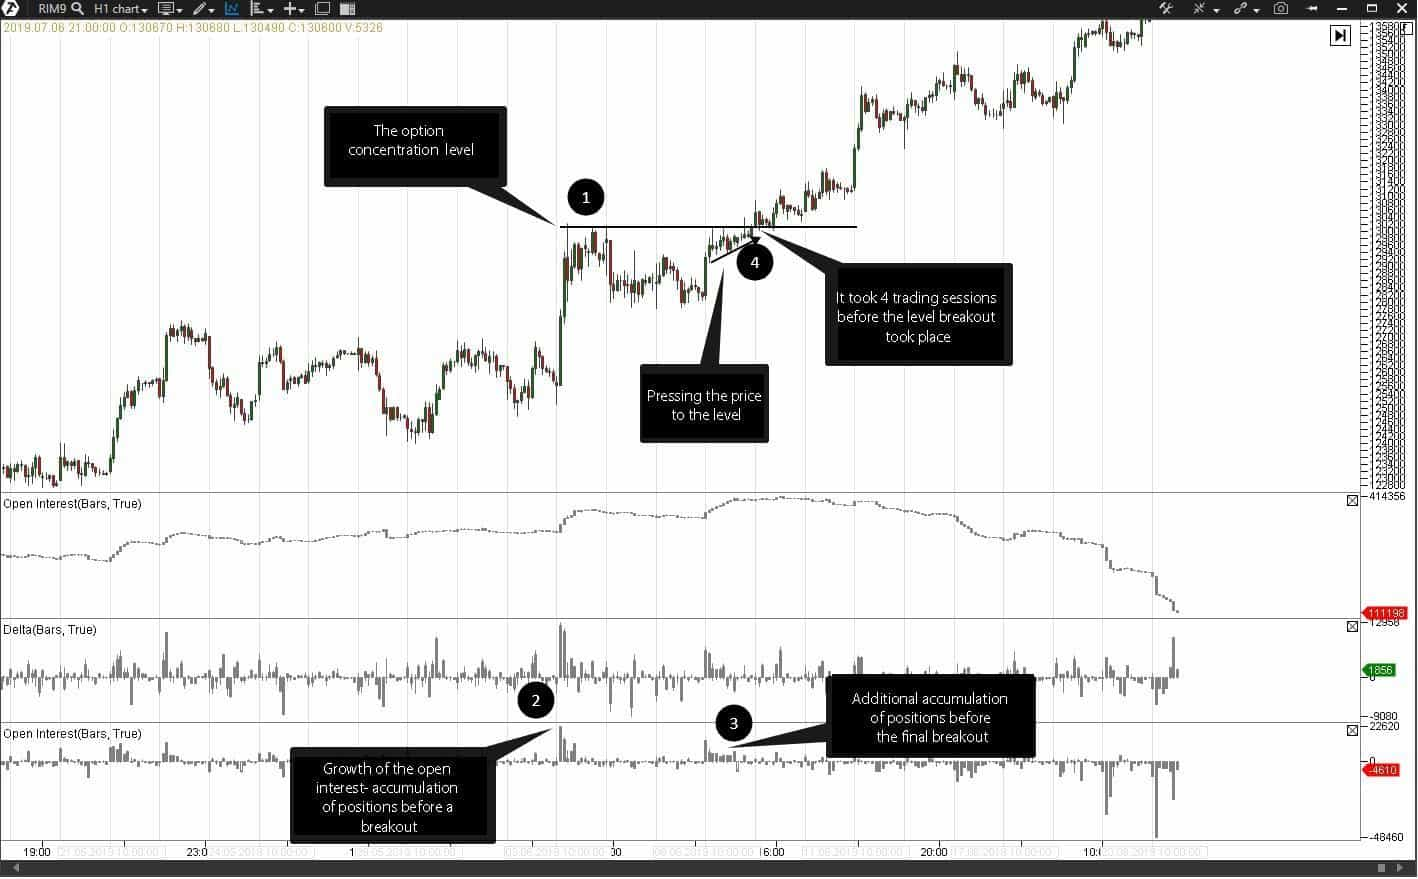 Looking for entry points at a breakout.